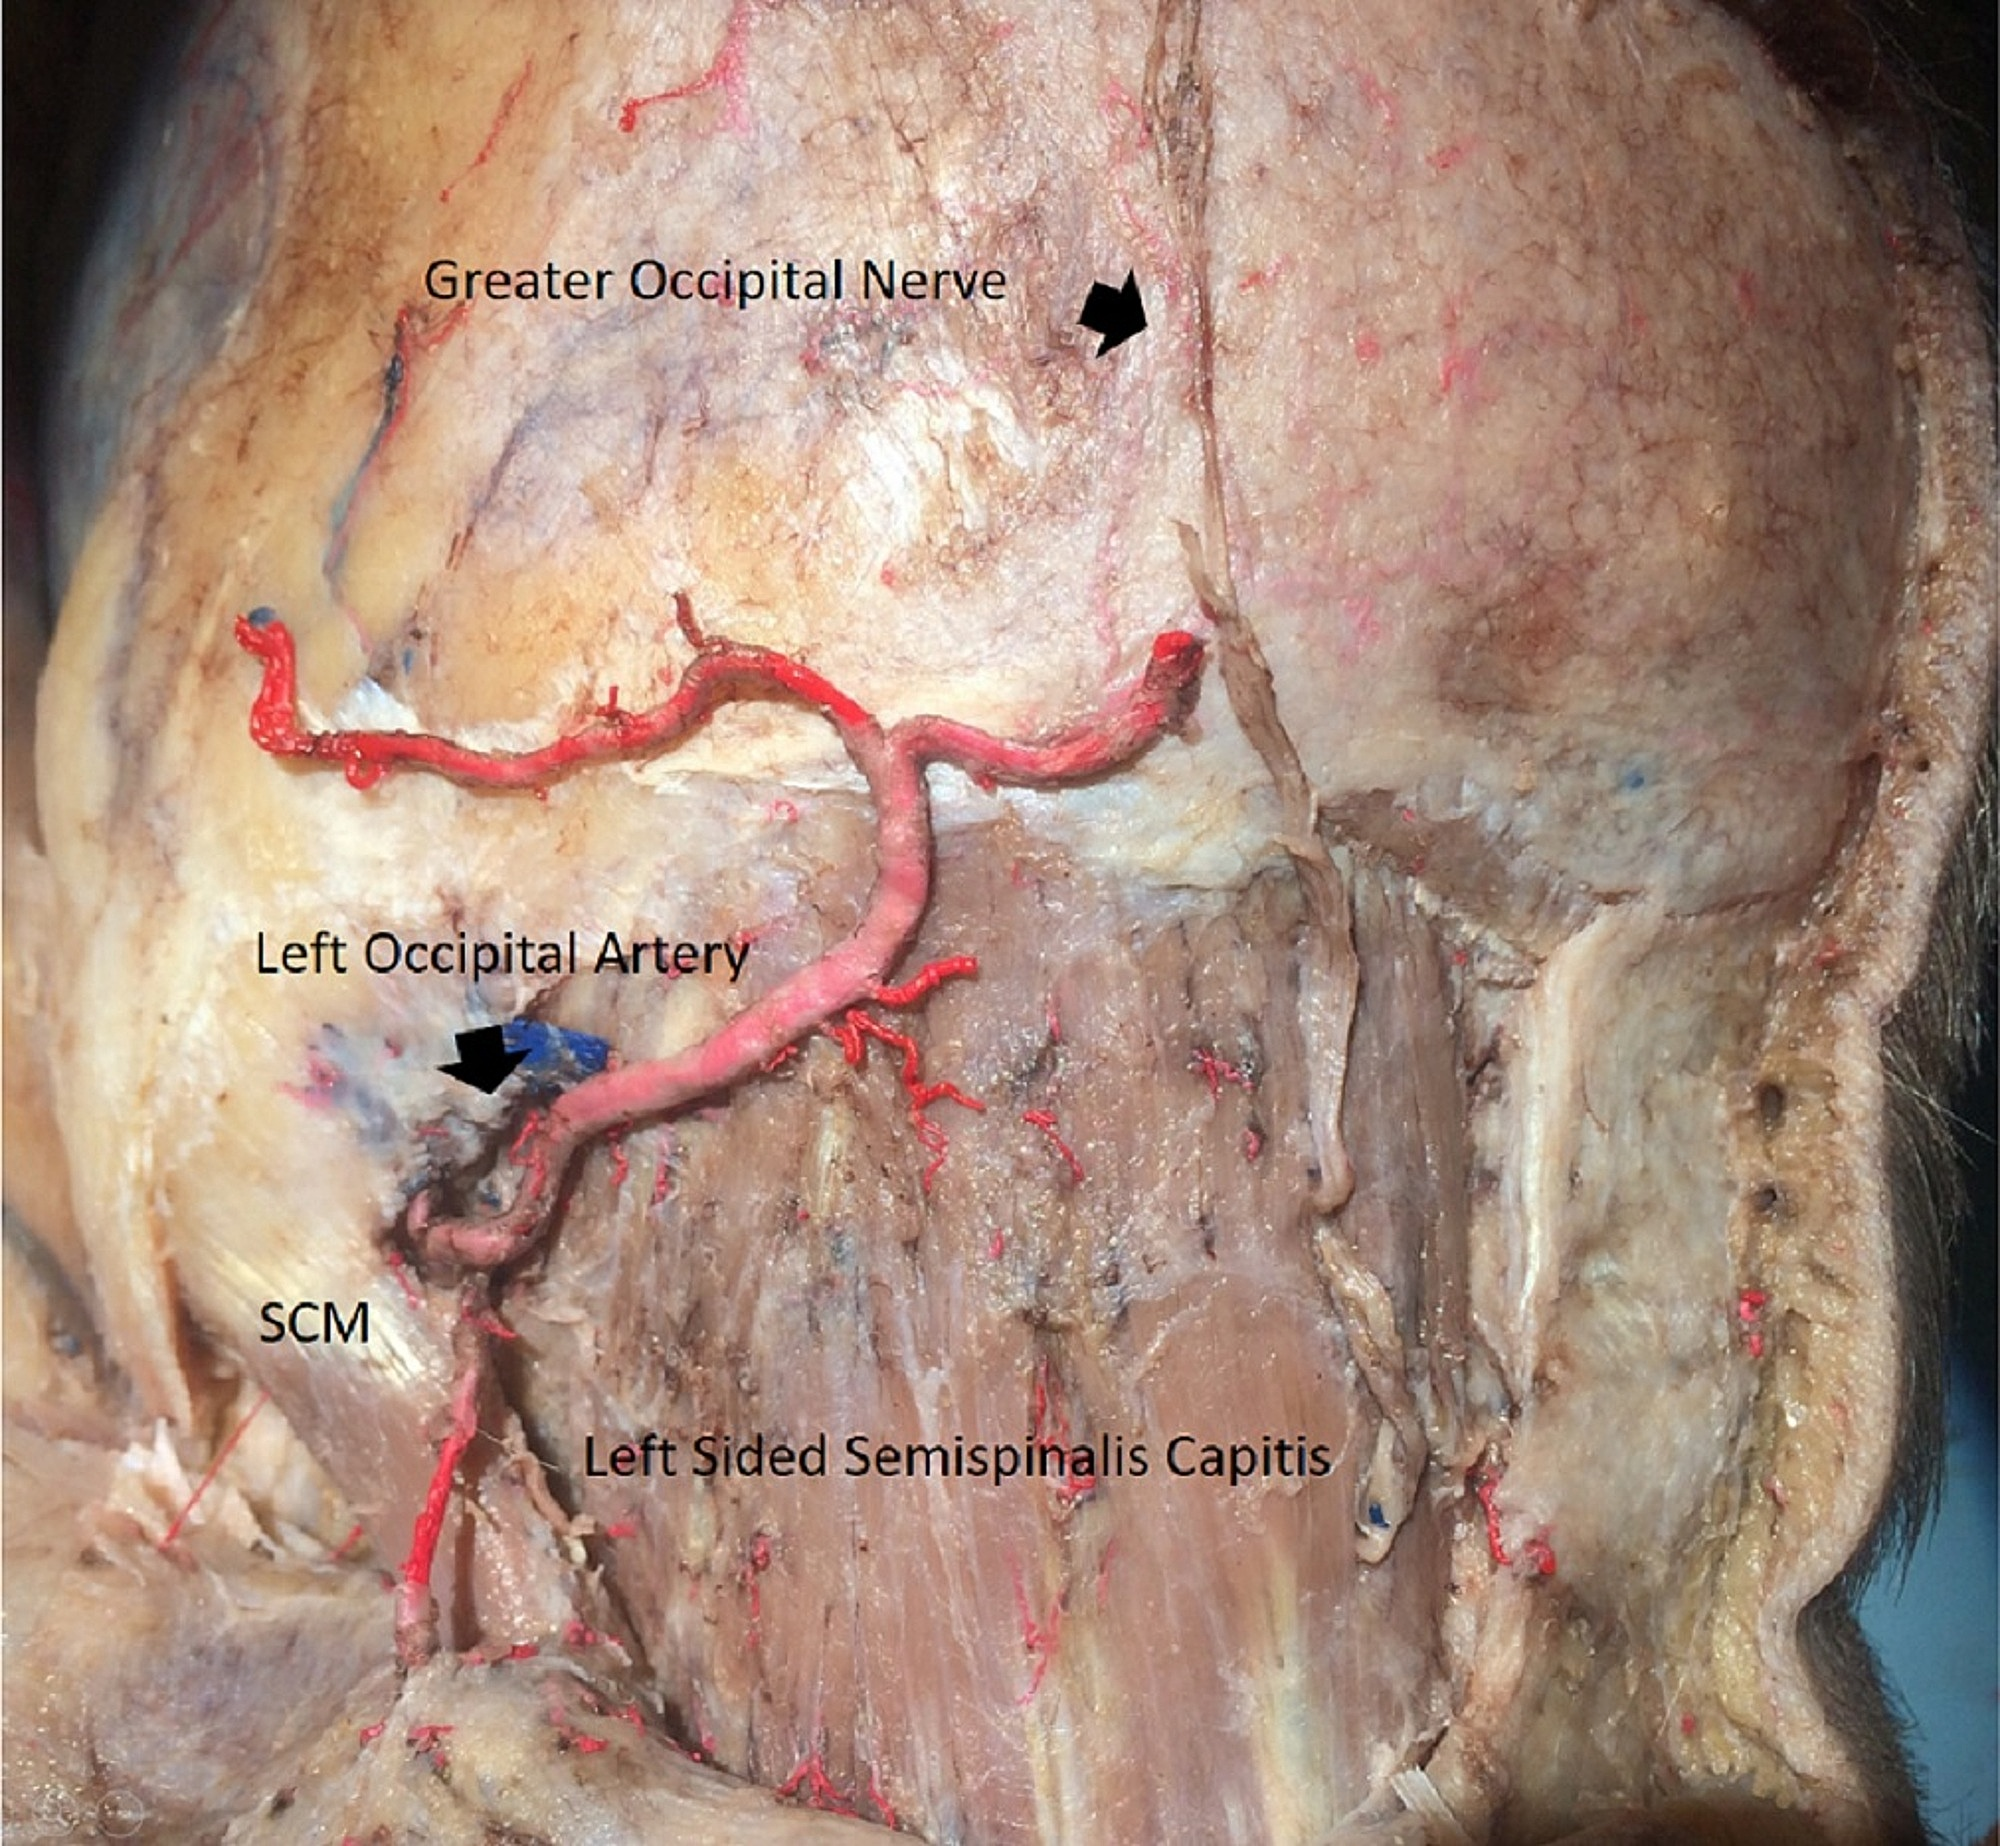 Cureus | C2 and Greater Occipital Nerve: The Anatomic and Functional ...